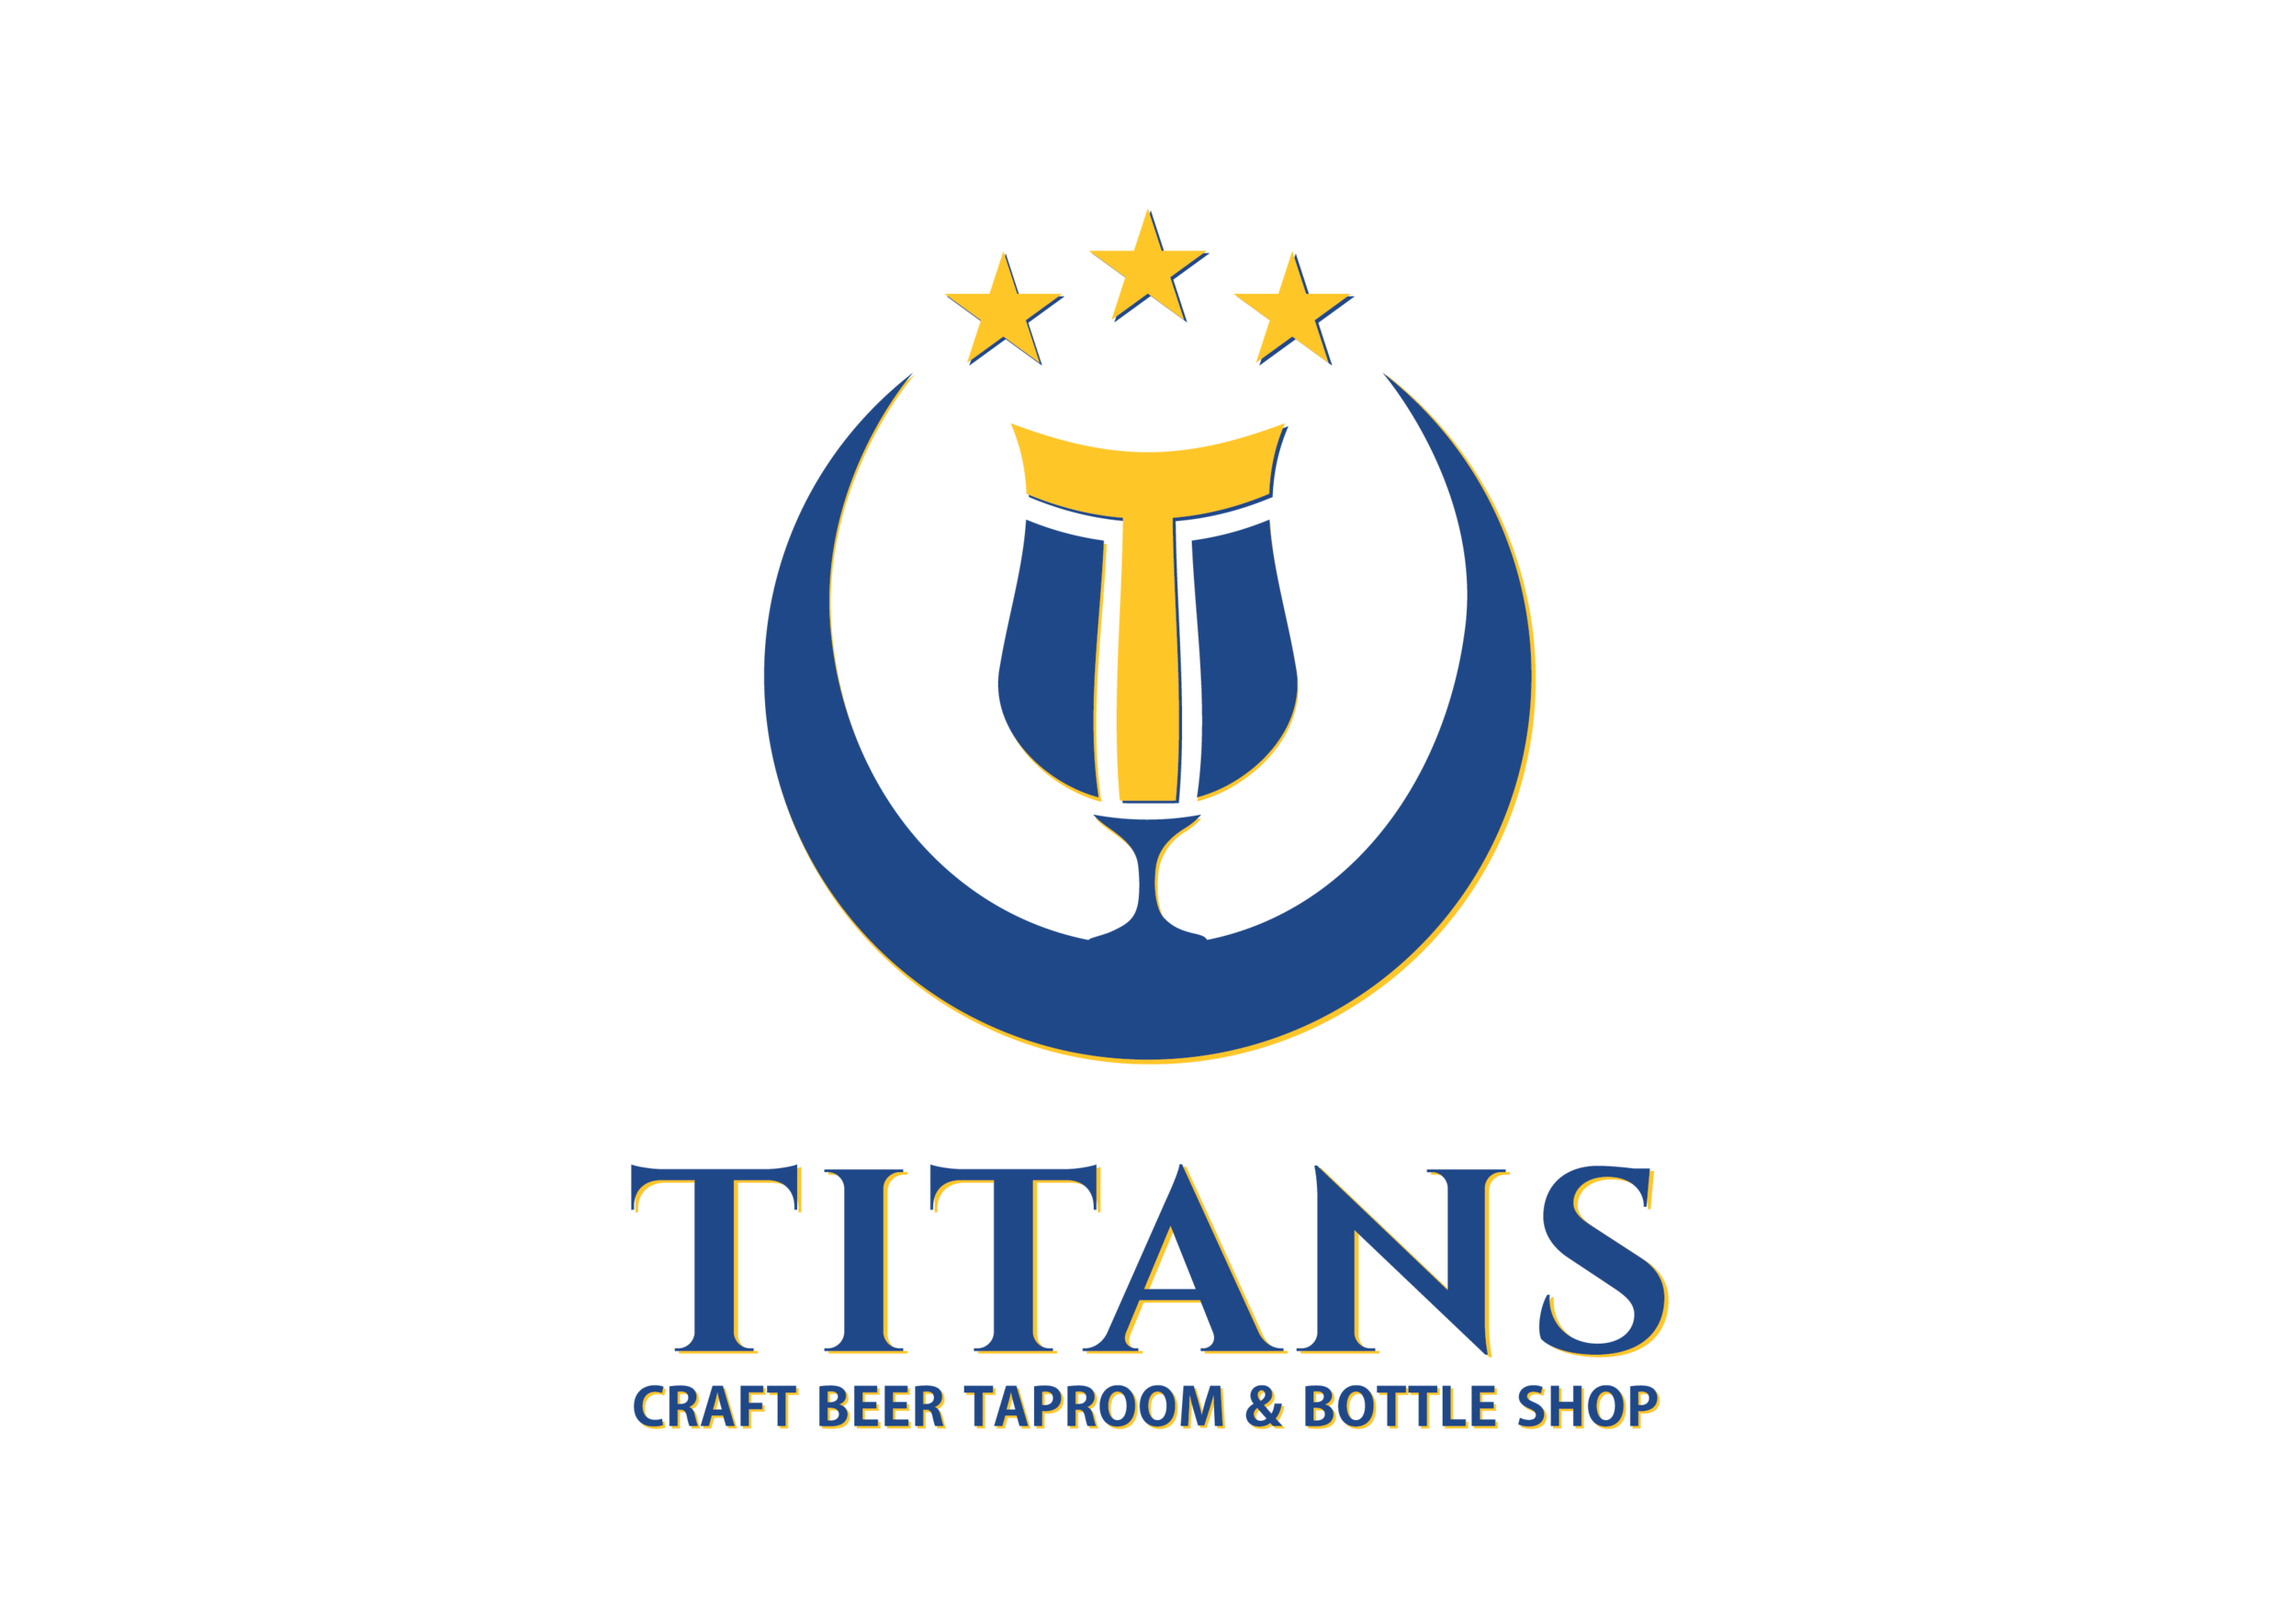 Titans Craft Beer Taproom